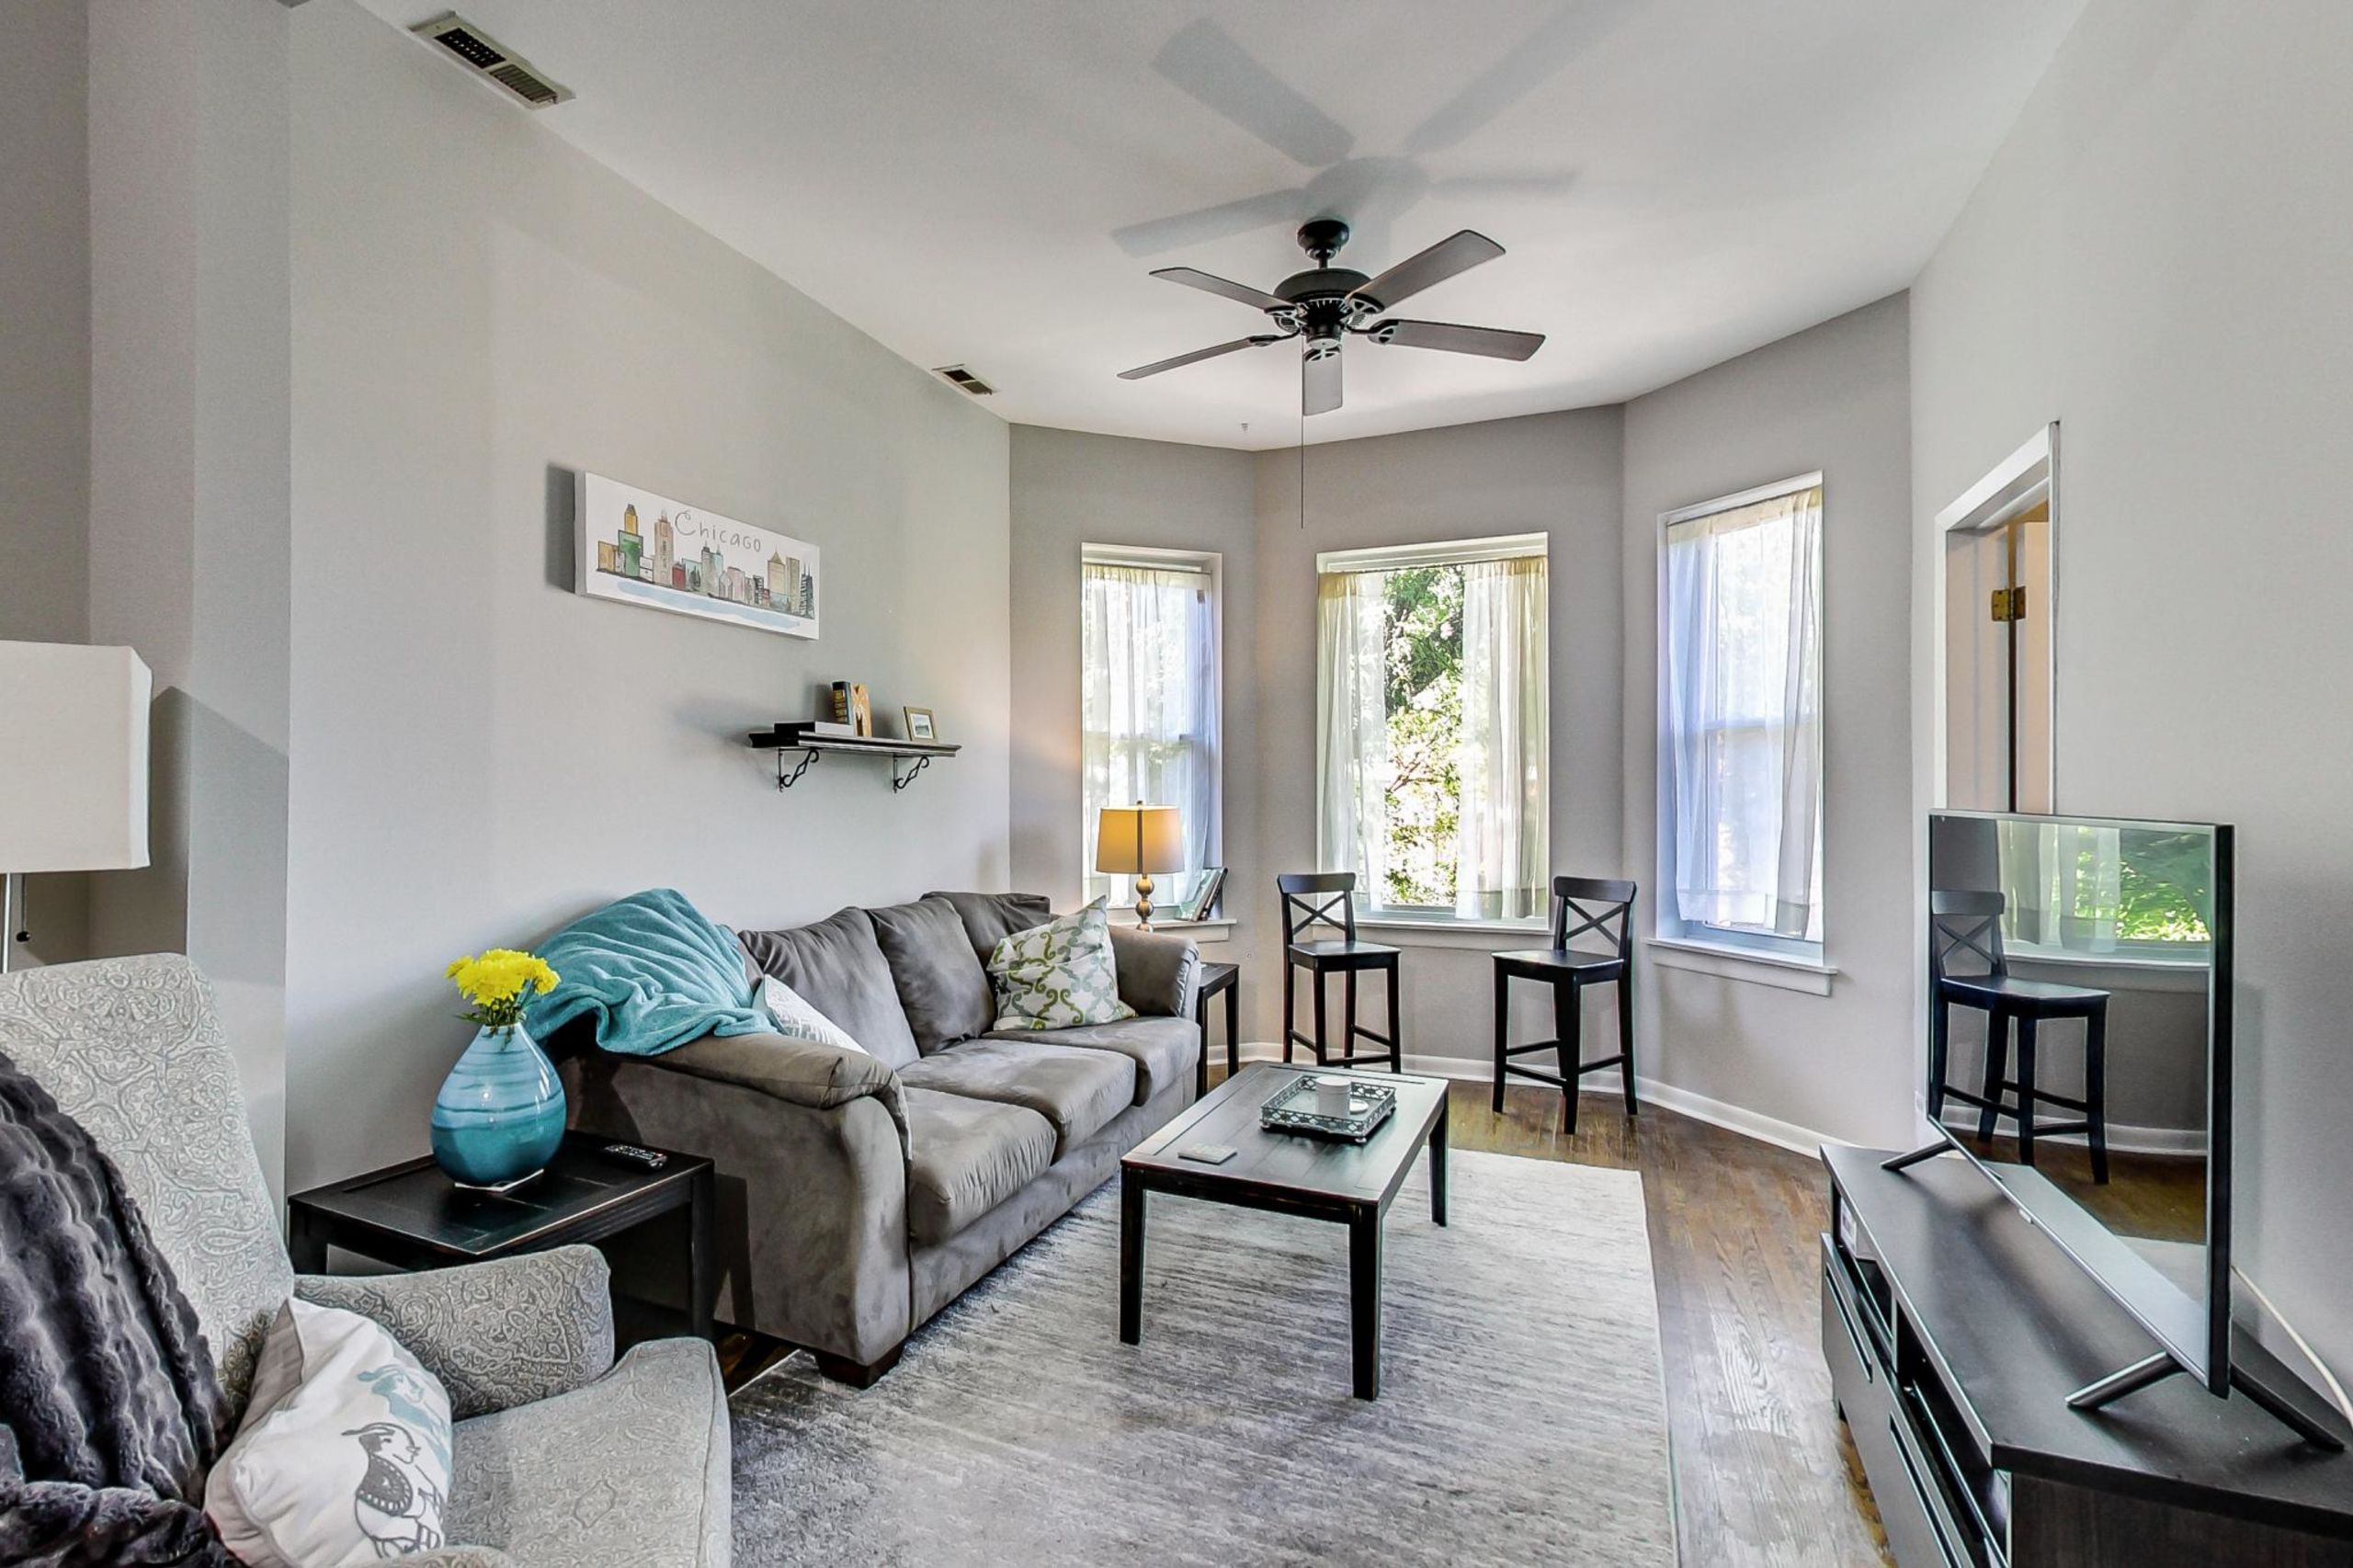 Click Photo For Tour - 2135 W. Crystal